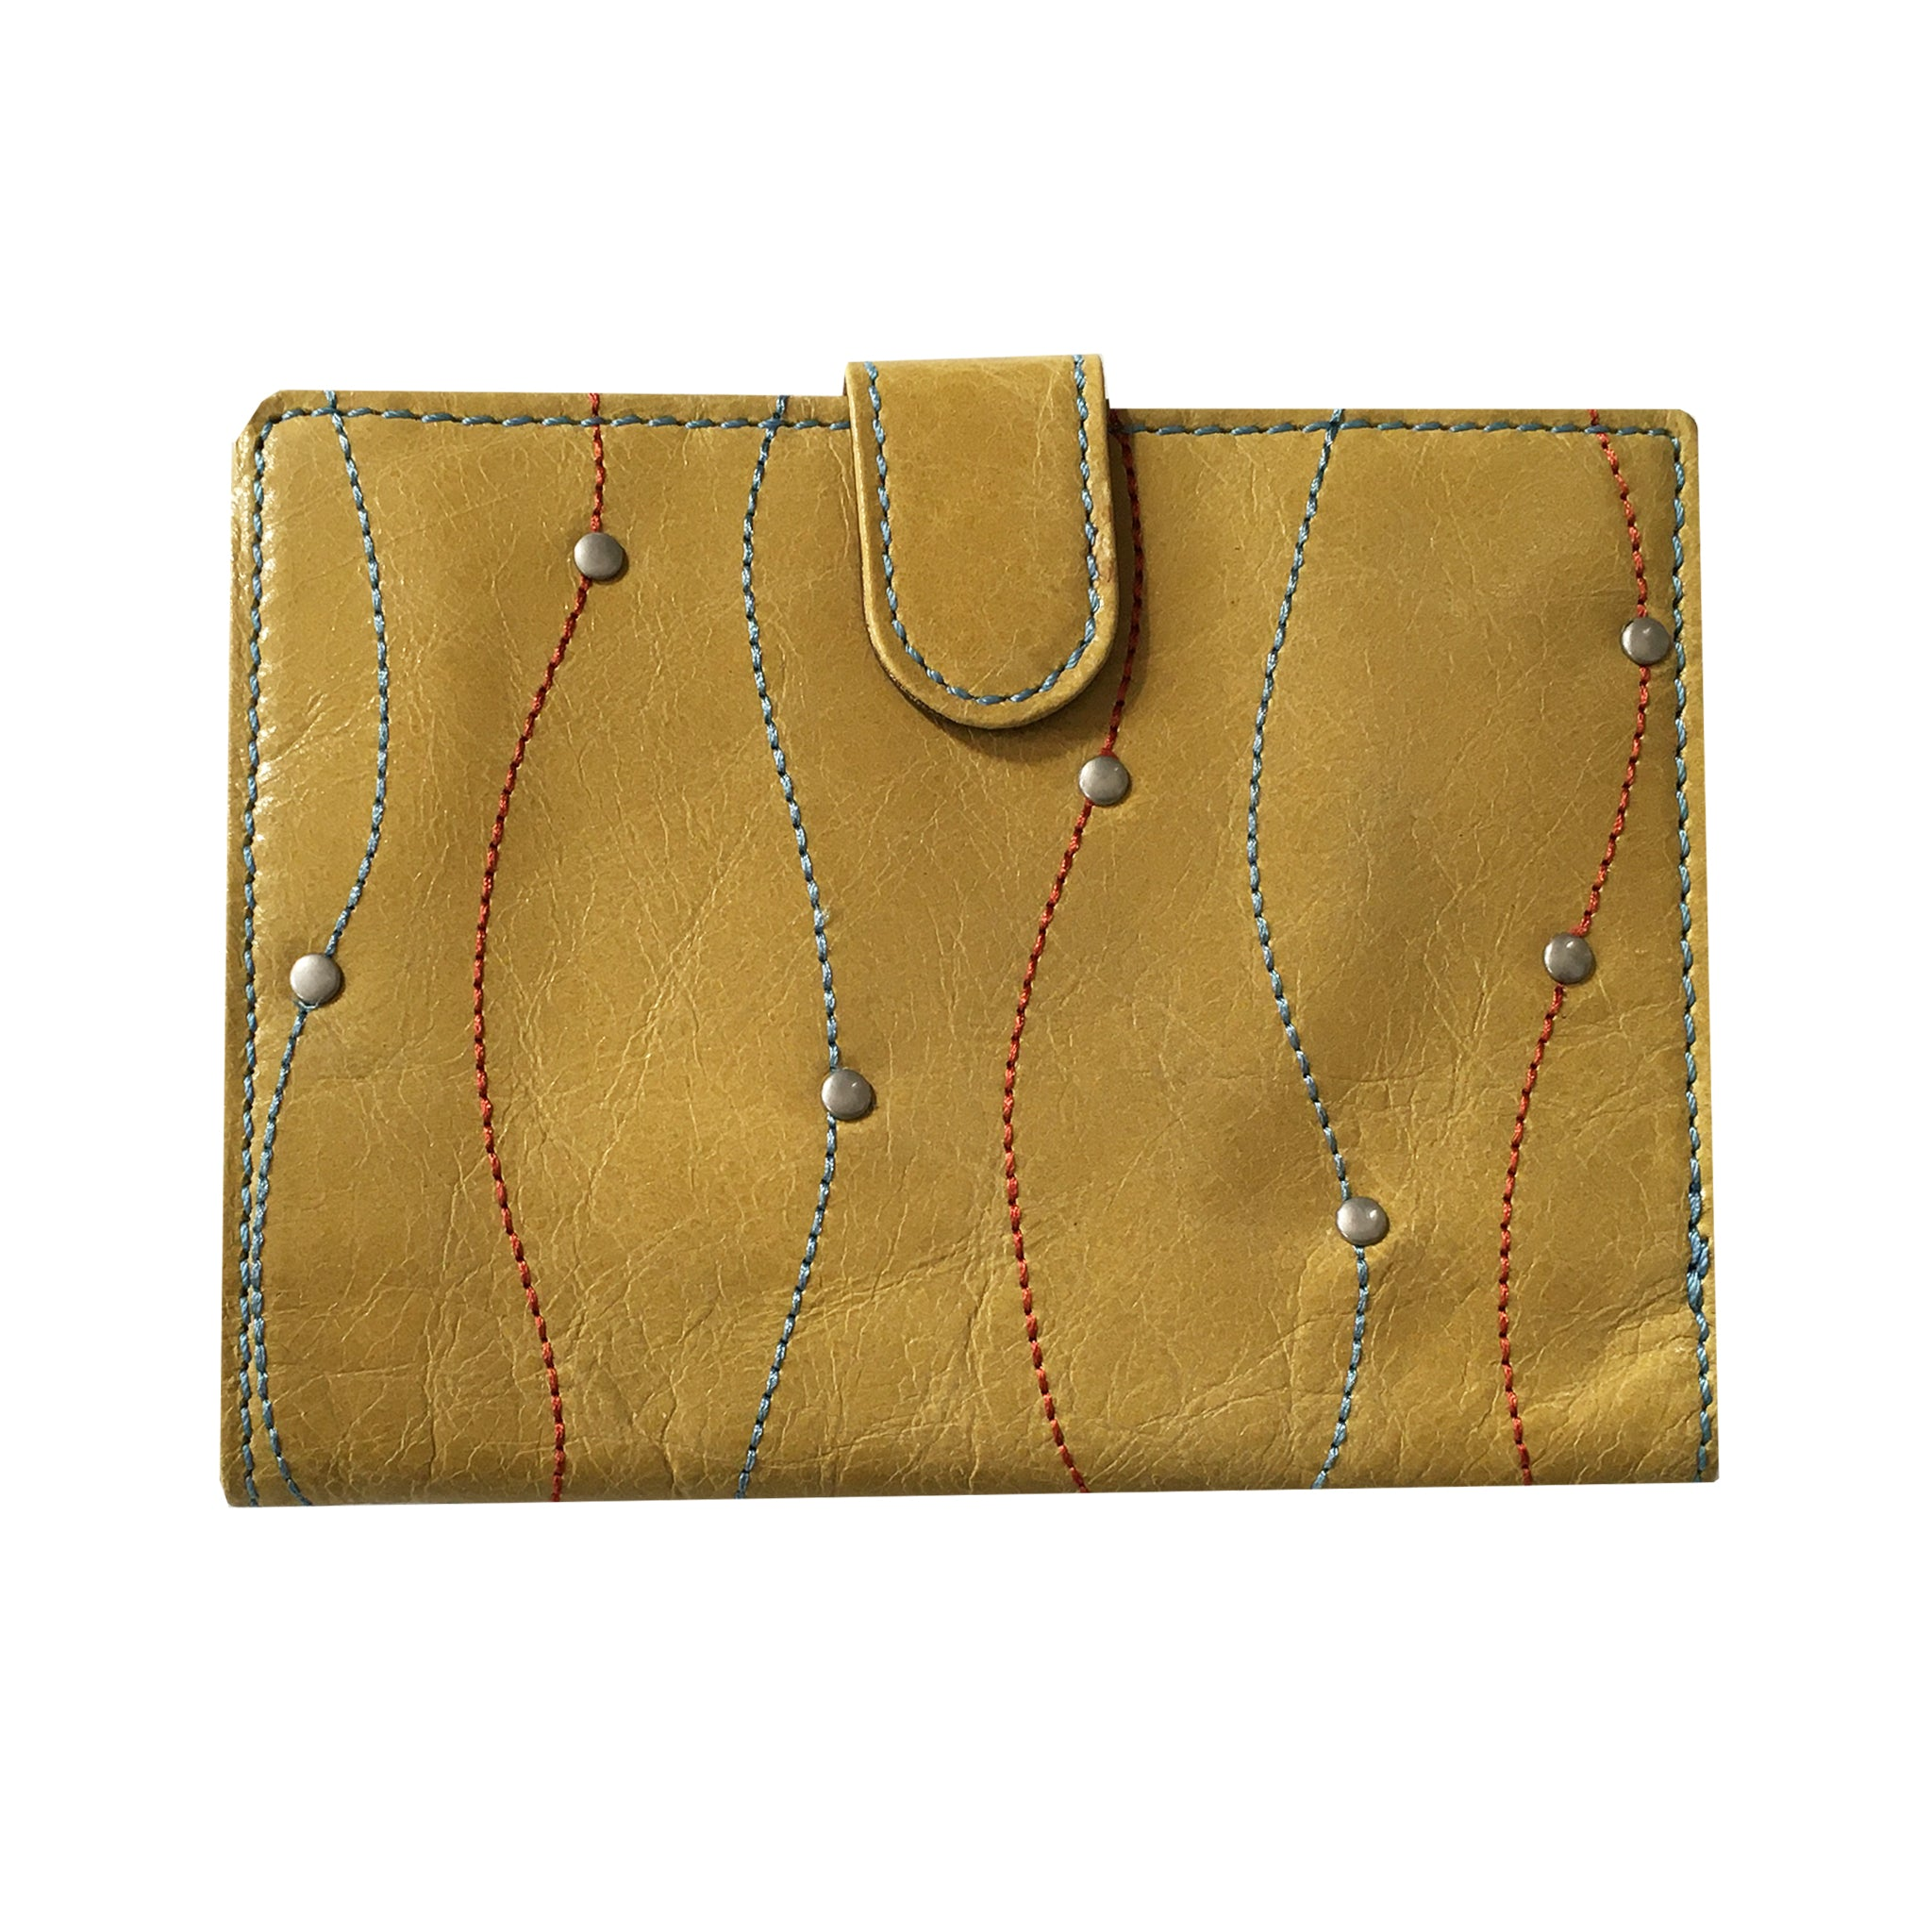 Highway Lora - The Highway Wallet | Yellow